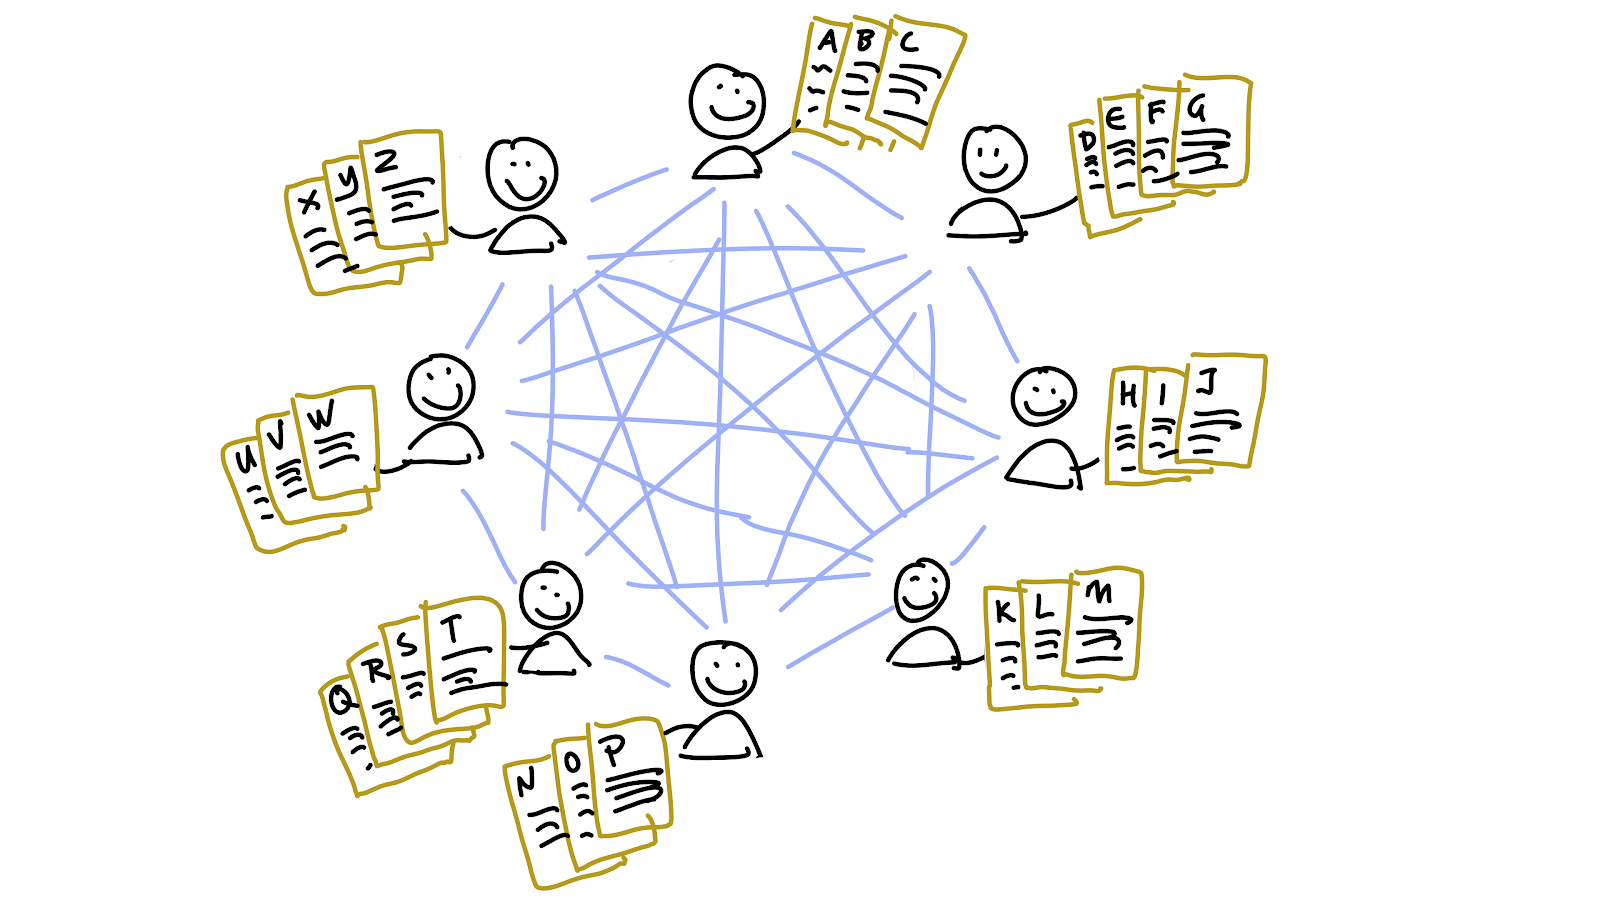 Eight peers connected directly to each other, each of whom stores the dictionary keys and values from three or four letters of the alphabet.